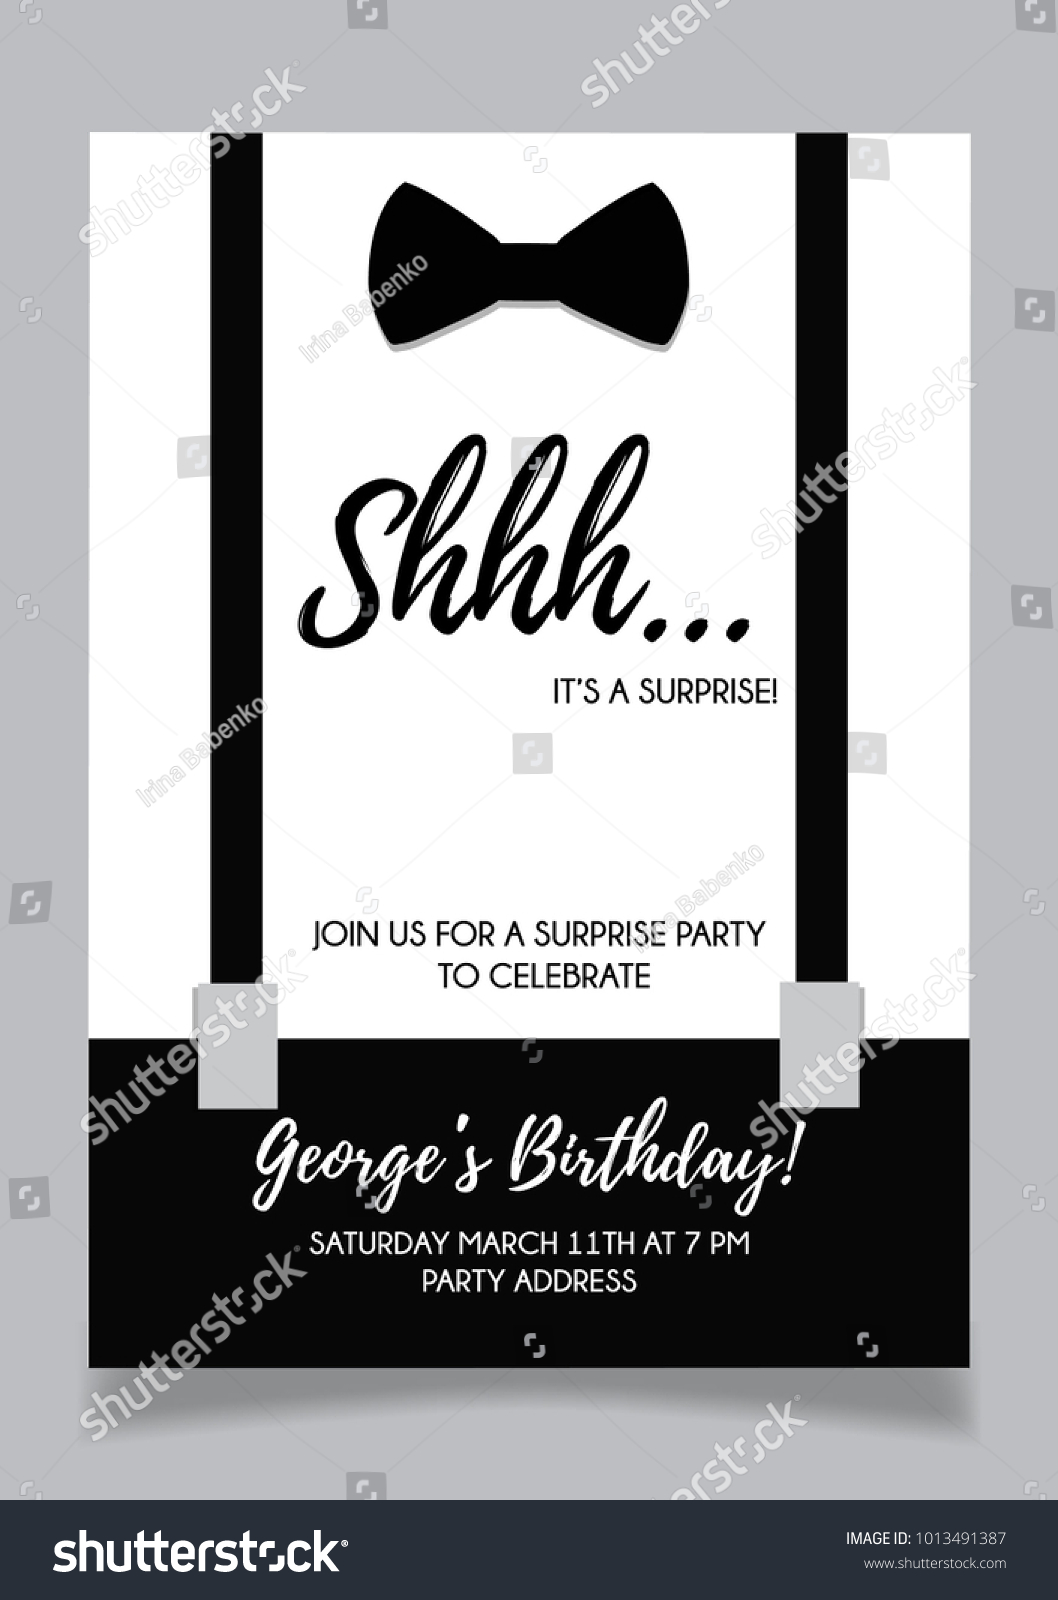 Shh Surprise Party Invitation Card Vector Stock Vector (Royalty Free ...